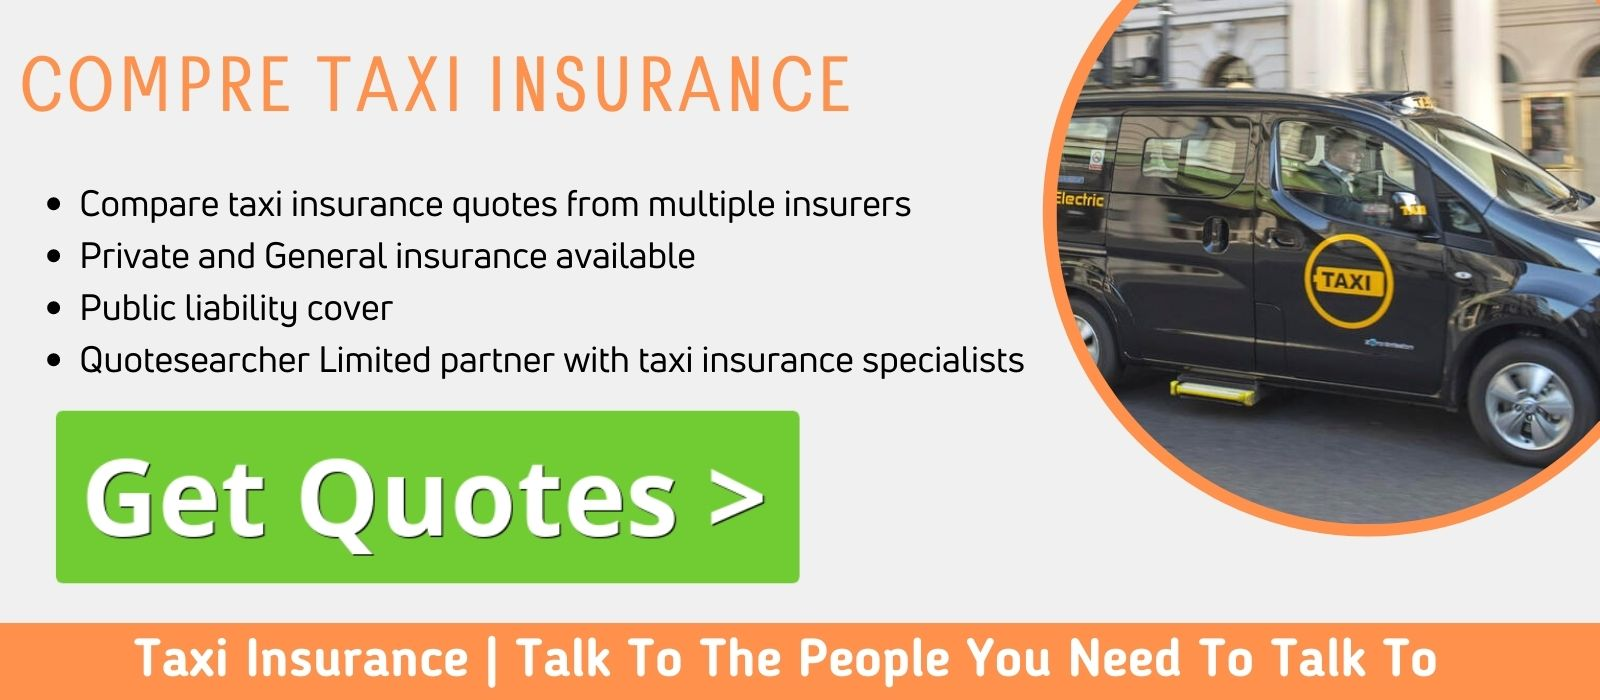 Compare Taxi Insurance Prices